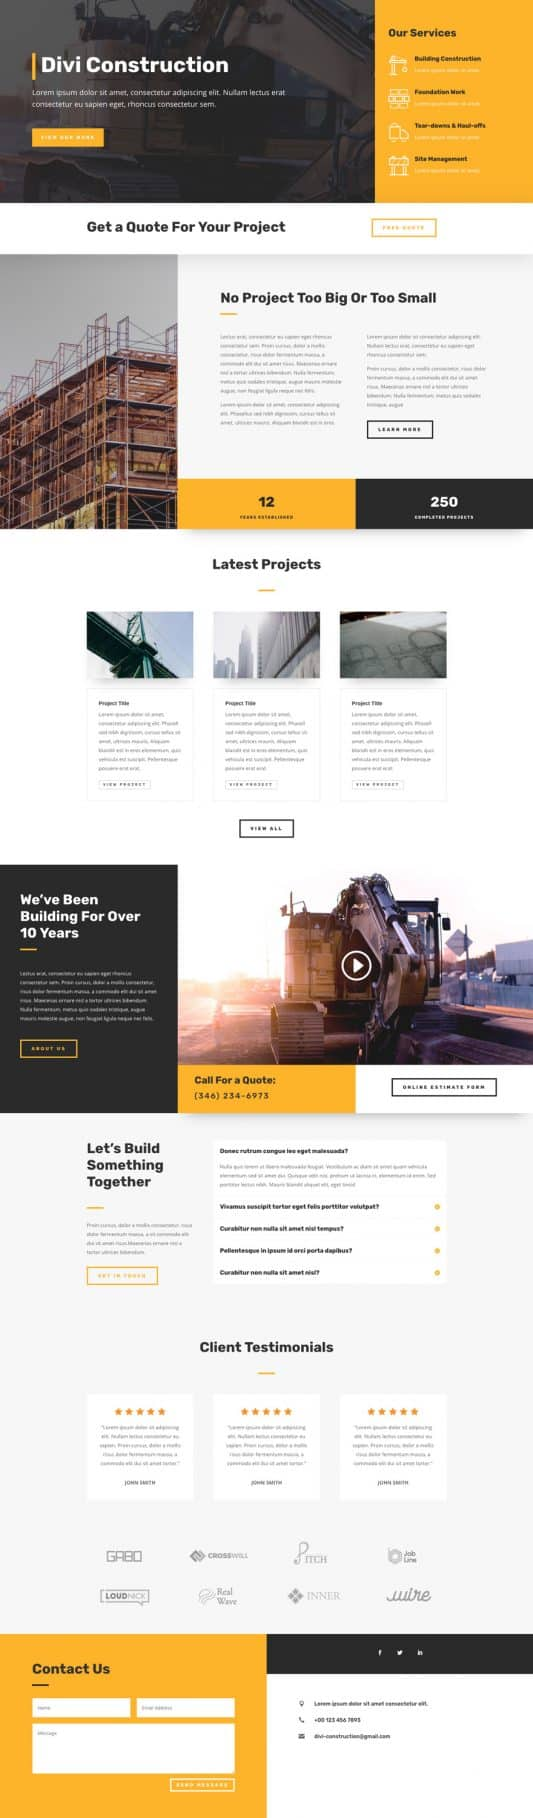 The Construction Company Page Style: Homepage Design 1